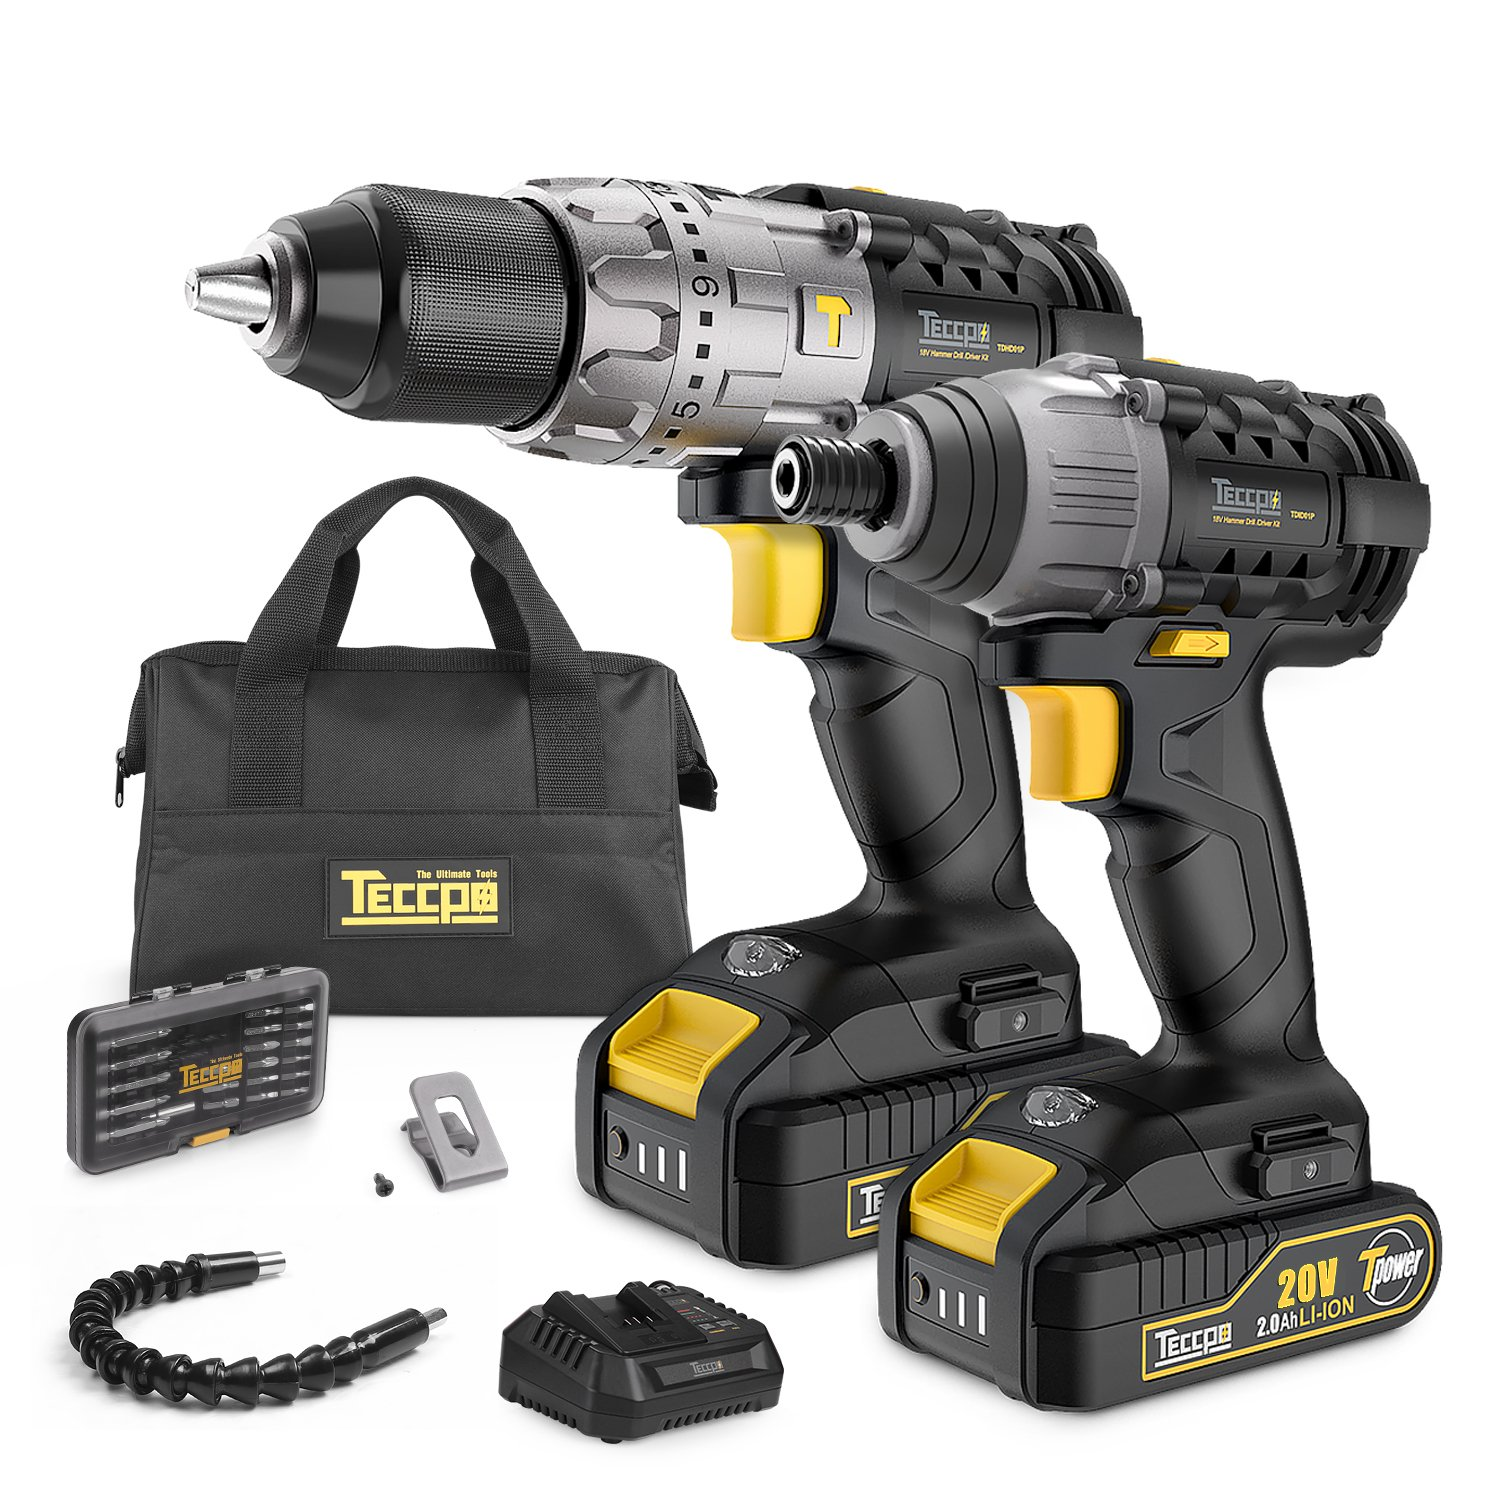 Combo Kit of TECCPO 20V Max TDHD01P Cordless Drill Driver 60Nm Max Torque, and TDID01P Impact Driver 180Nm Max Torque with 2x 2.0Ah Lithium-Ion Batteries, 30 Minute Fast Charger